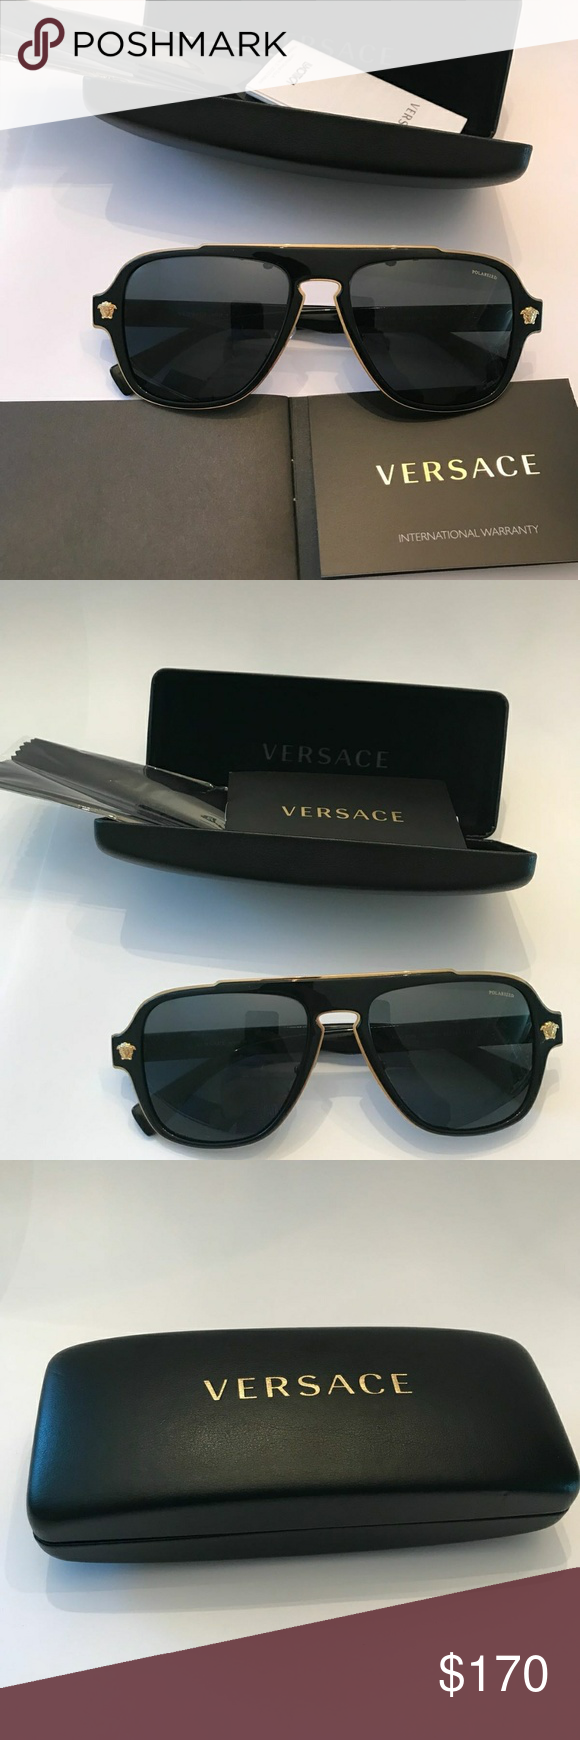 93c58cd4395 Versace Polarized Sunglasses VE2199 Black versace sunglasses. They are in  mint condition. Never used. Size 56 Versace Accessories Glasses